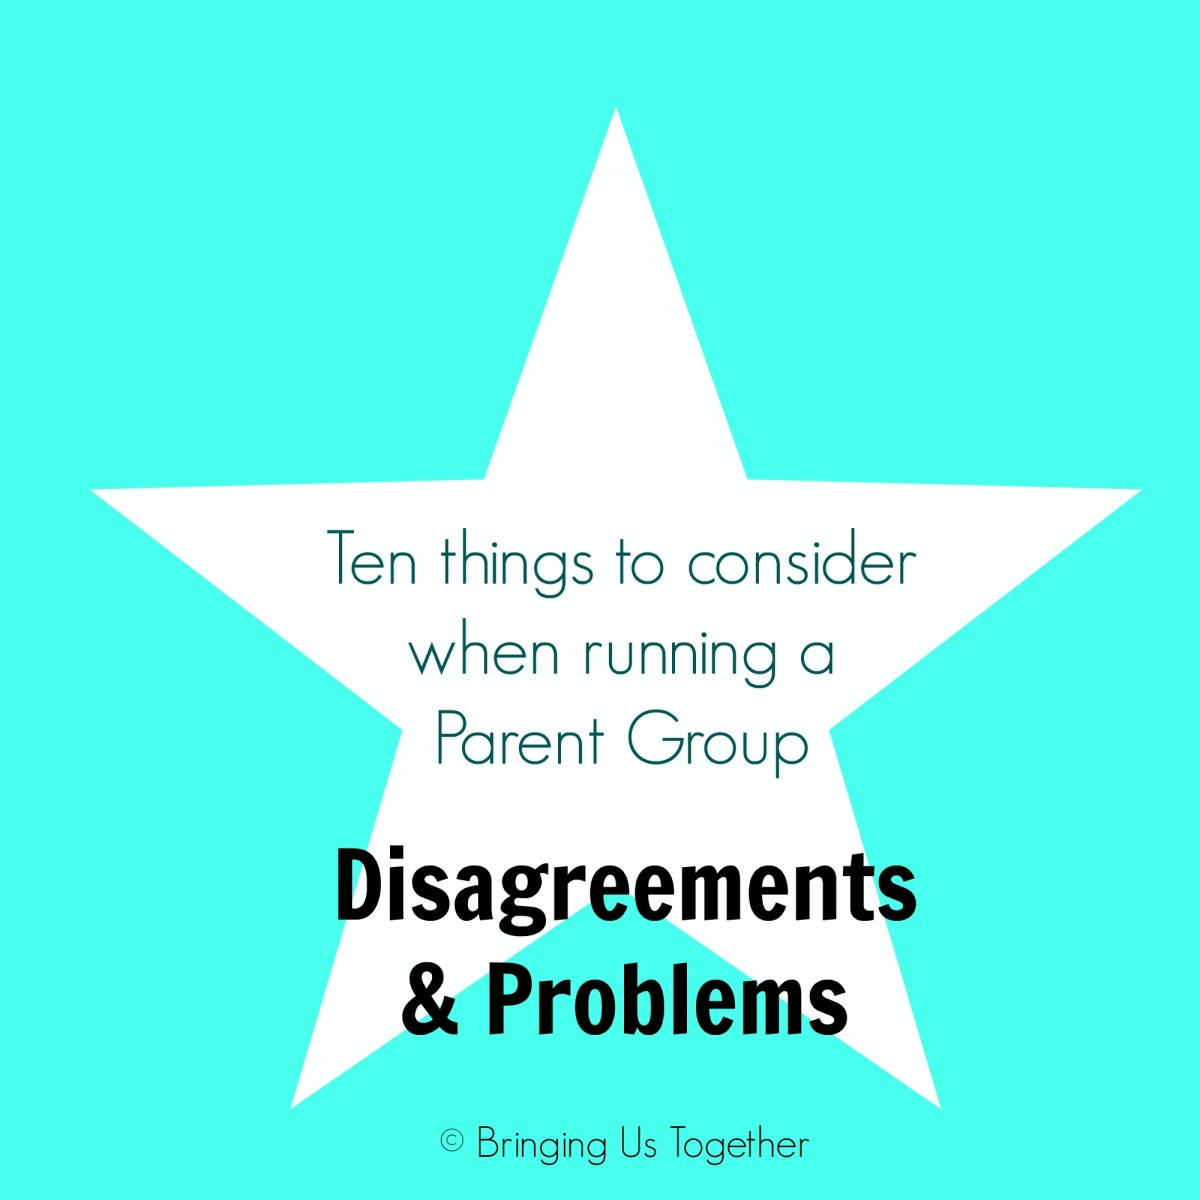 Parent Groups - Disagreements and problems